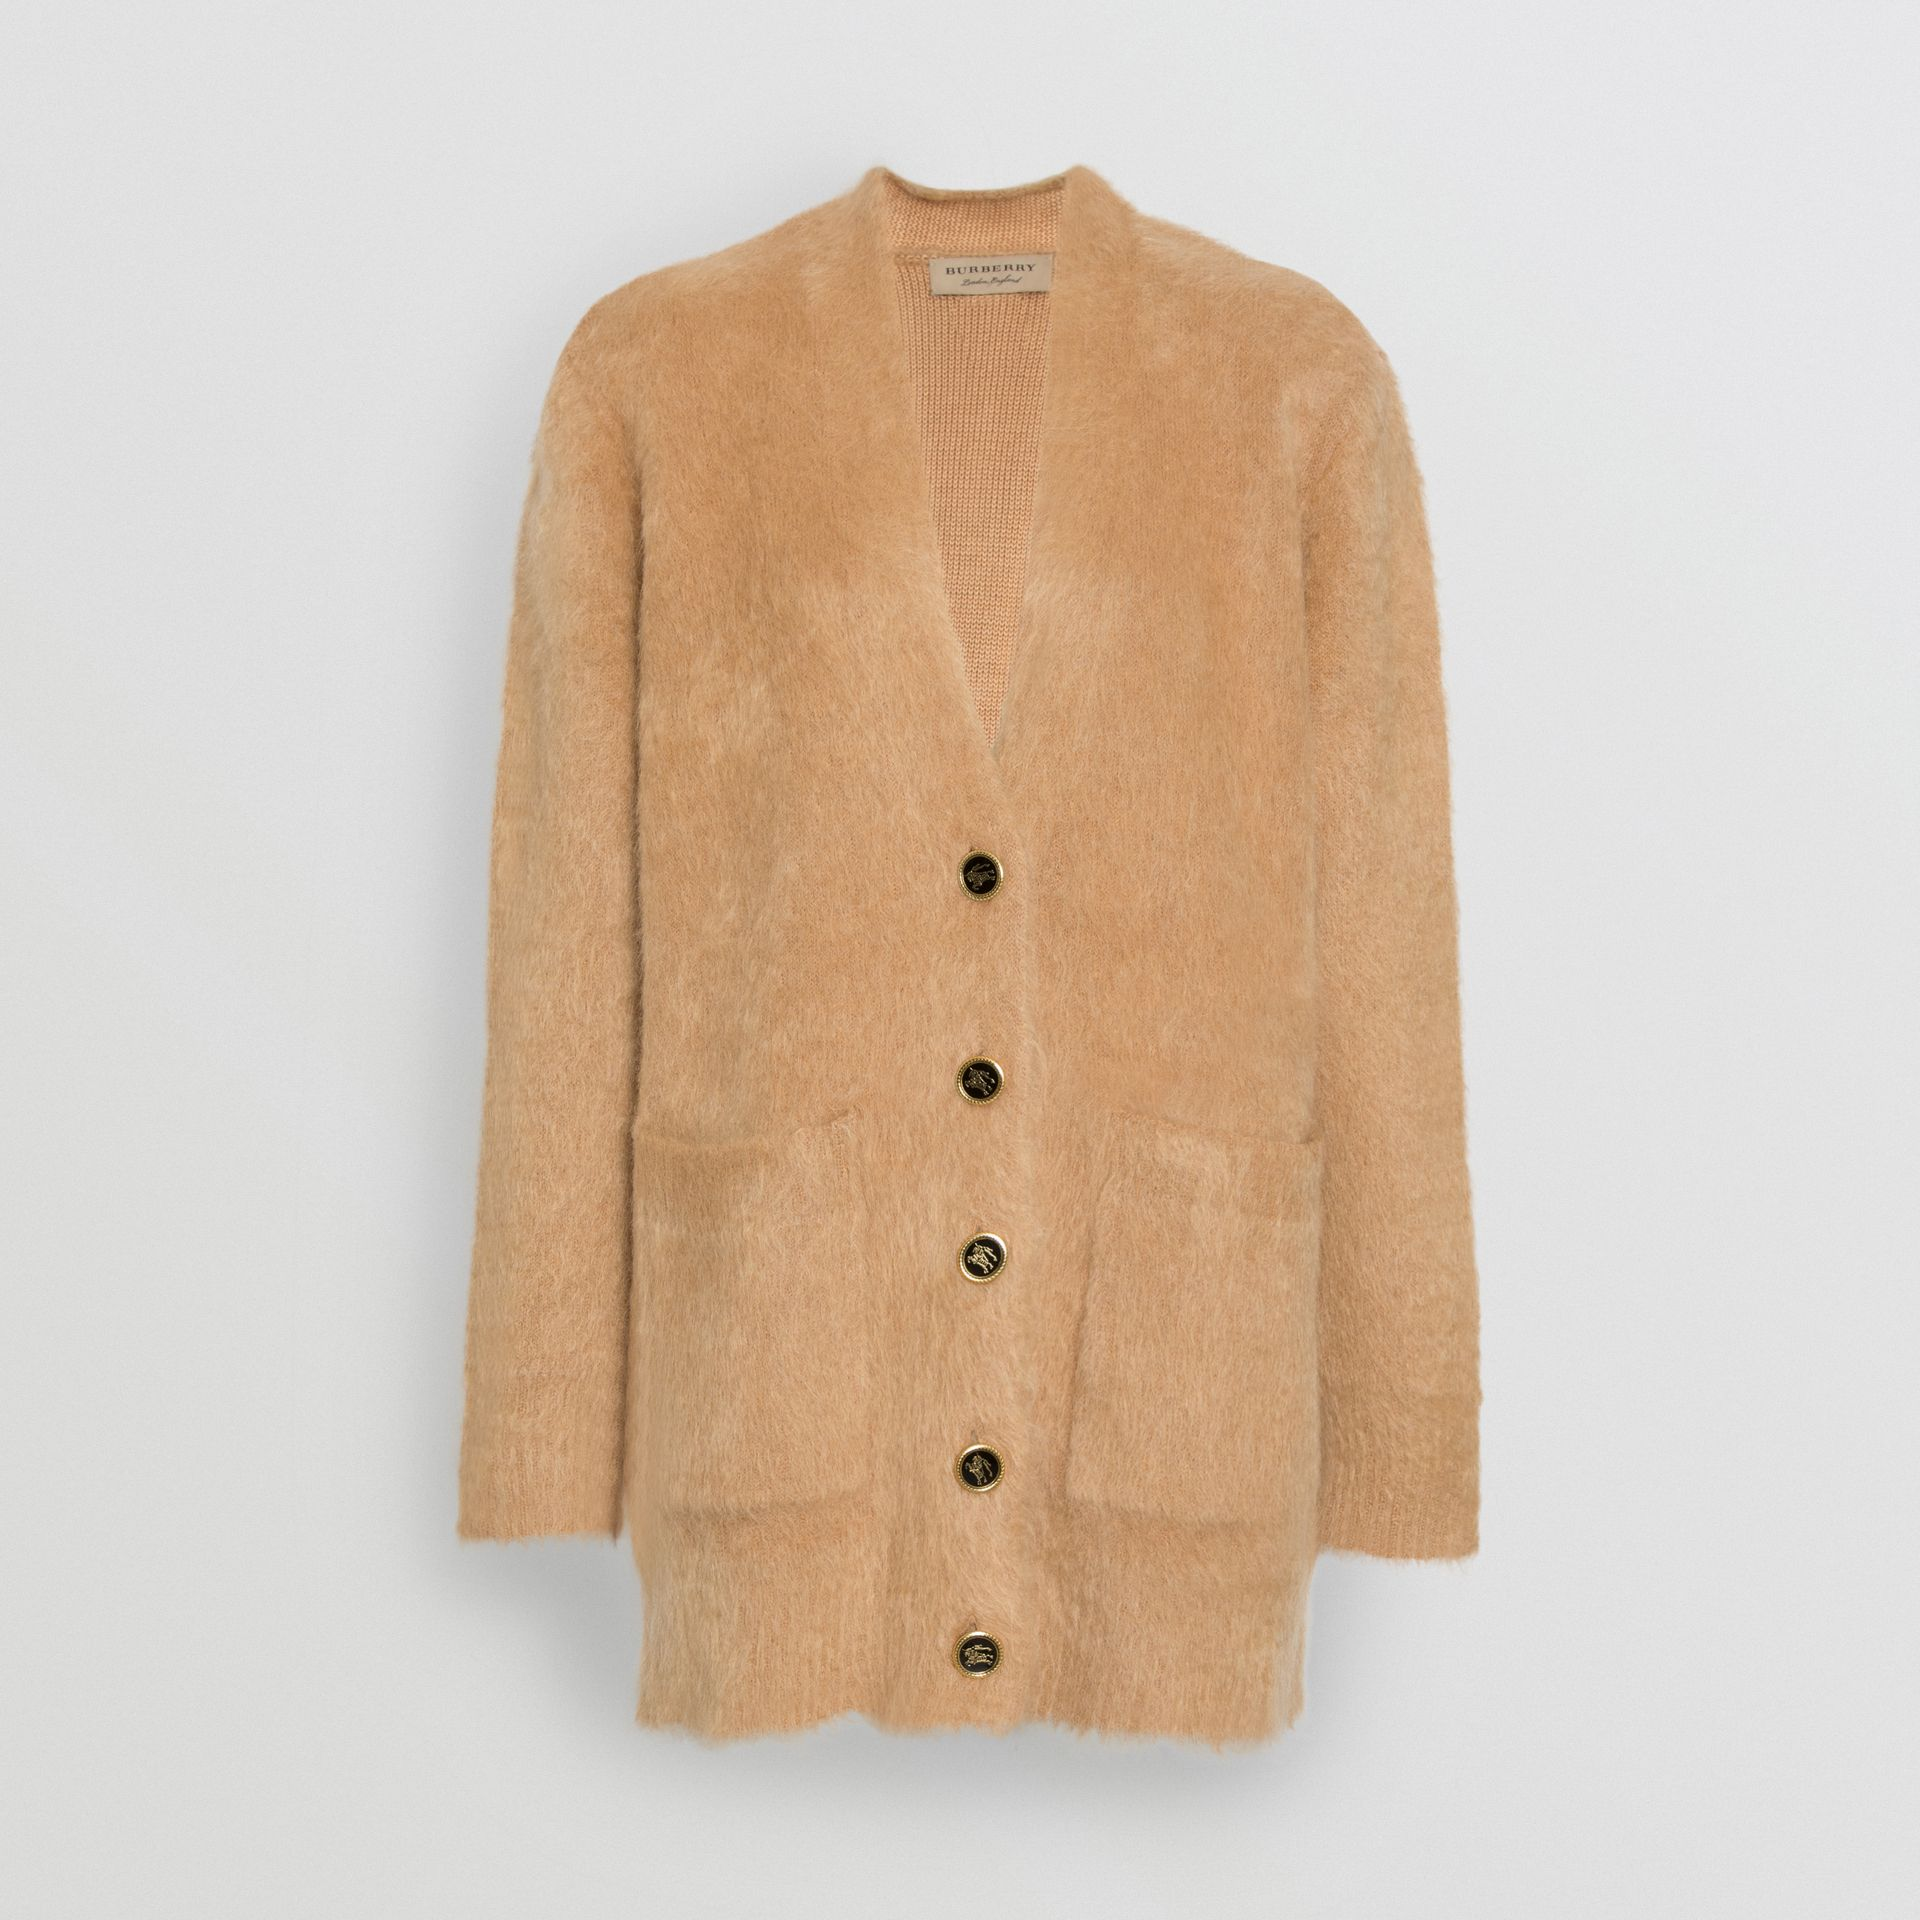 Silk Mohair Wool Blend V-neck Cardigan in Light Camel - Women | Burberry Australia - gallery image 3